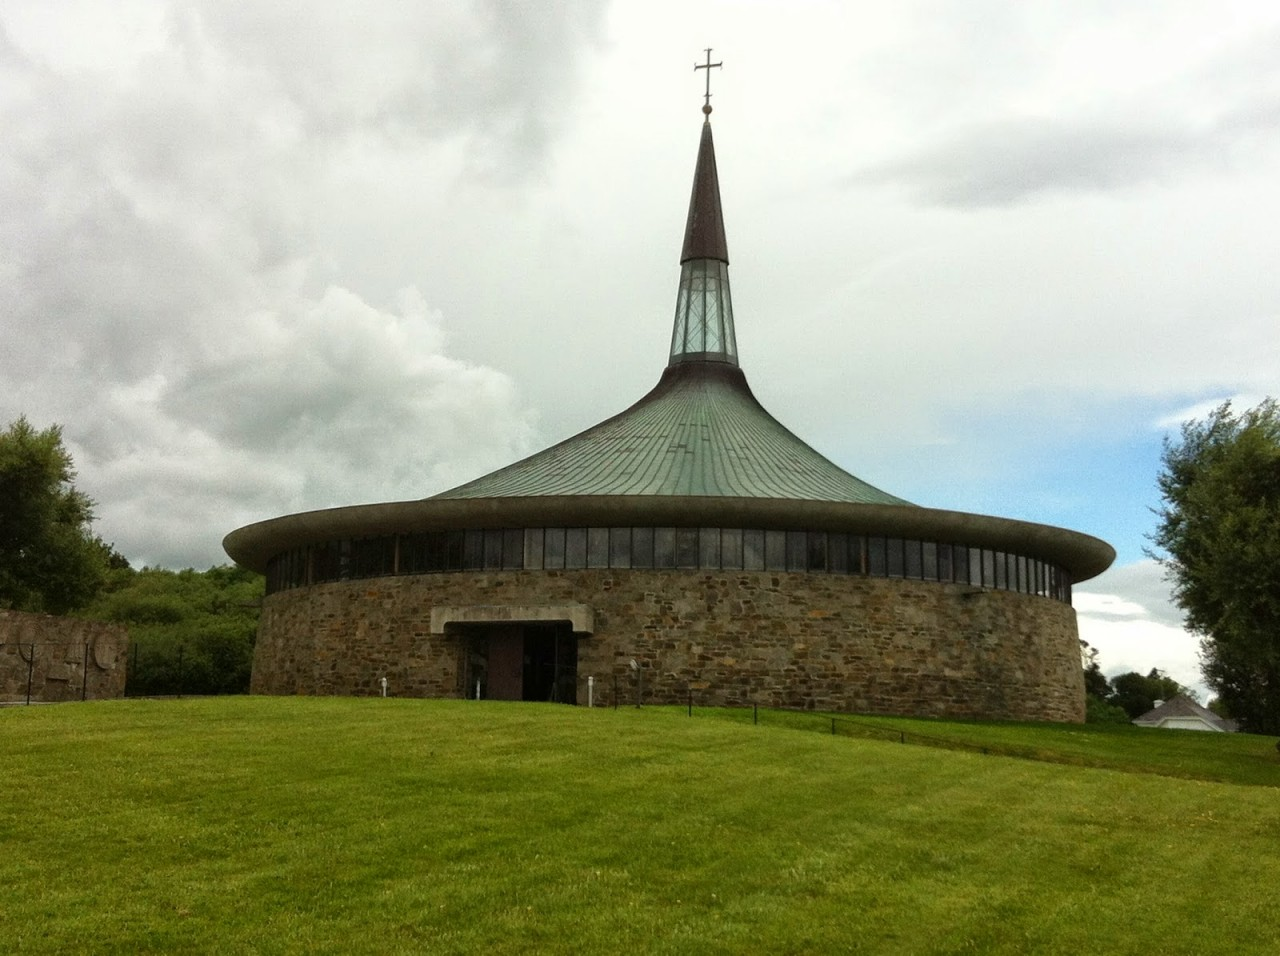 Homily - St Aengus' Church Burt - Golden Jubilee Mass - Bishop Donal McKeown - 25th June 2017